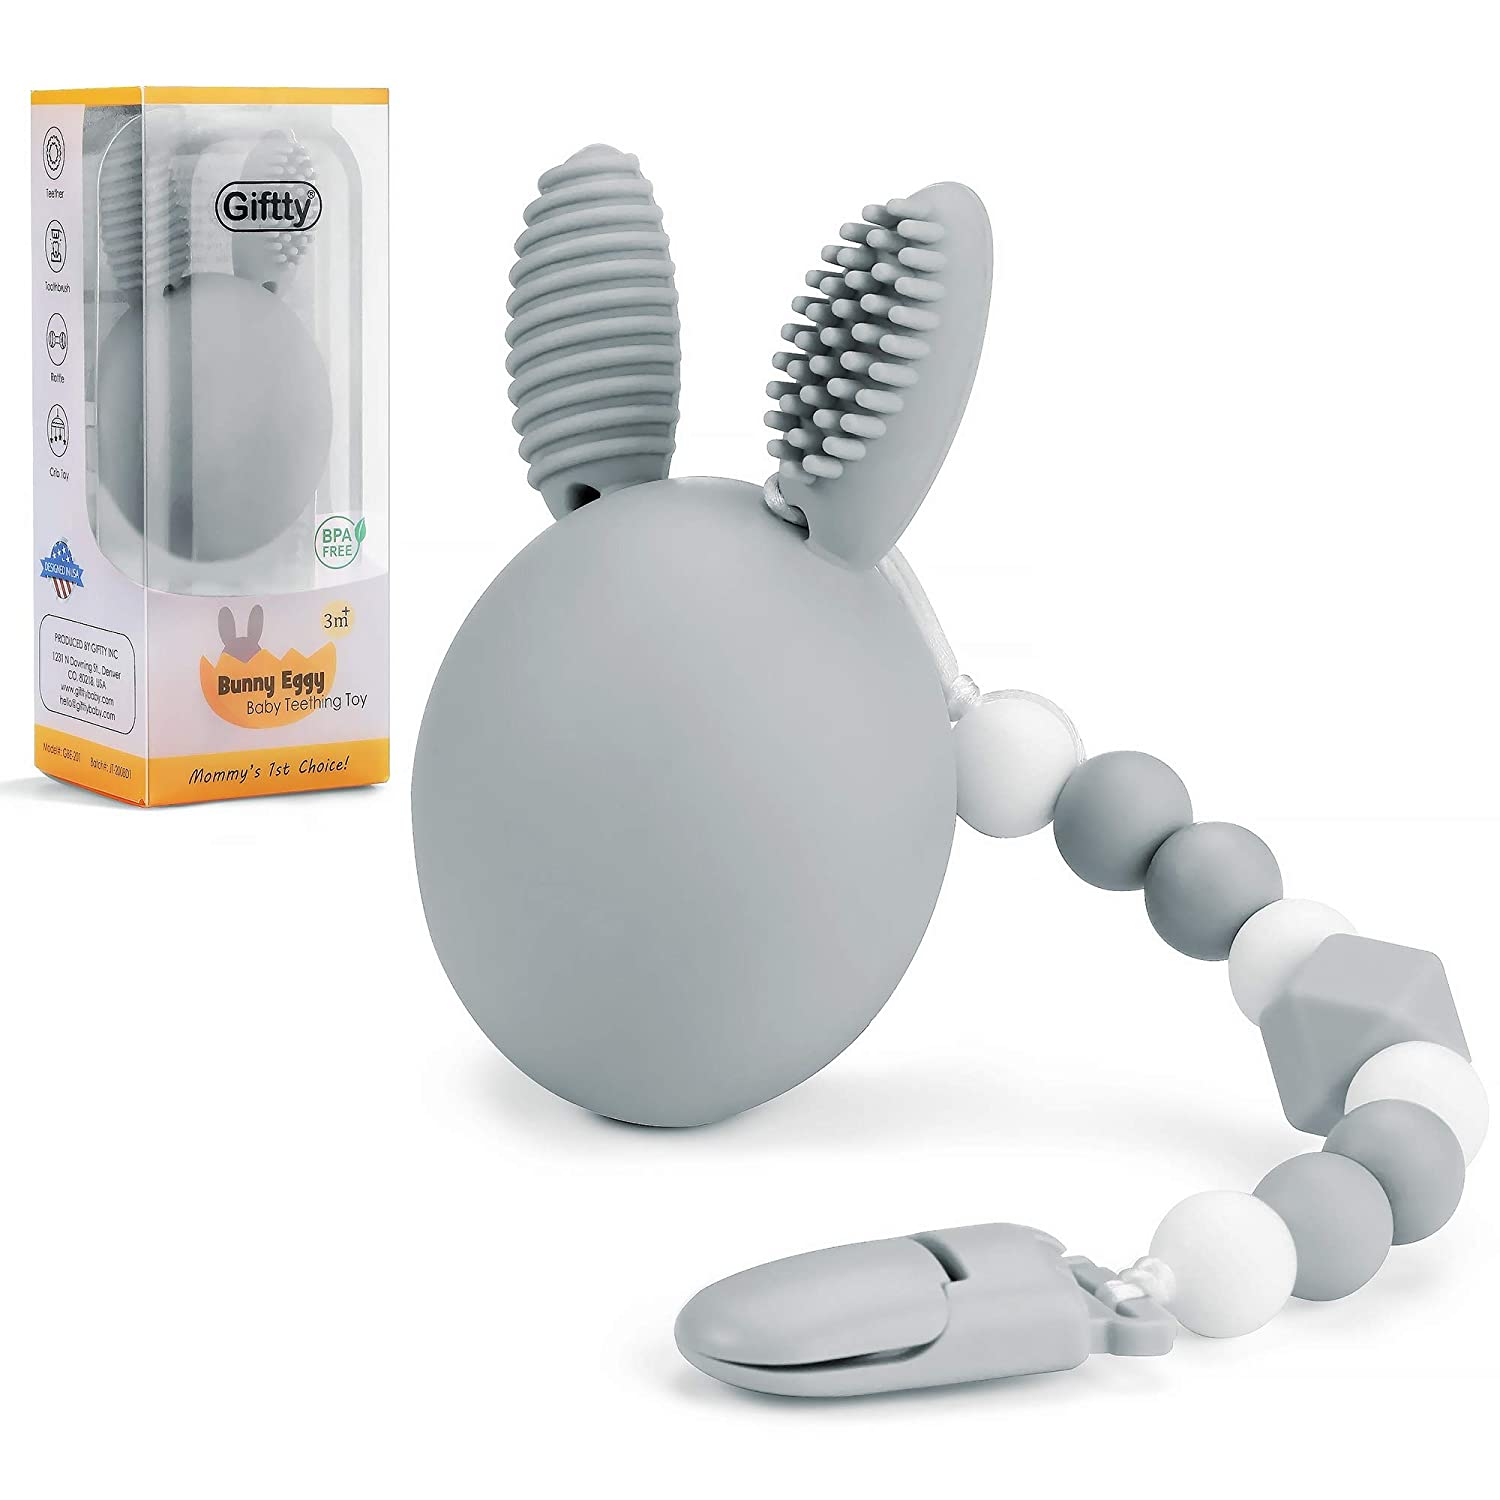 Bunny Eggy Teething Toy, Multifunction Teether Toothbrush Rattle Gum Massager Infants Sensory Toy with Silicone Bead Clip and Carry Box, 100% Food-Grade Silicone, Safe for Baby Boys and Girls (Gray)